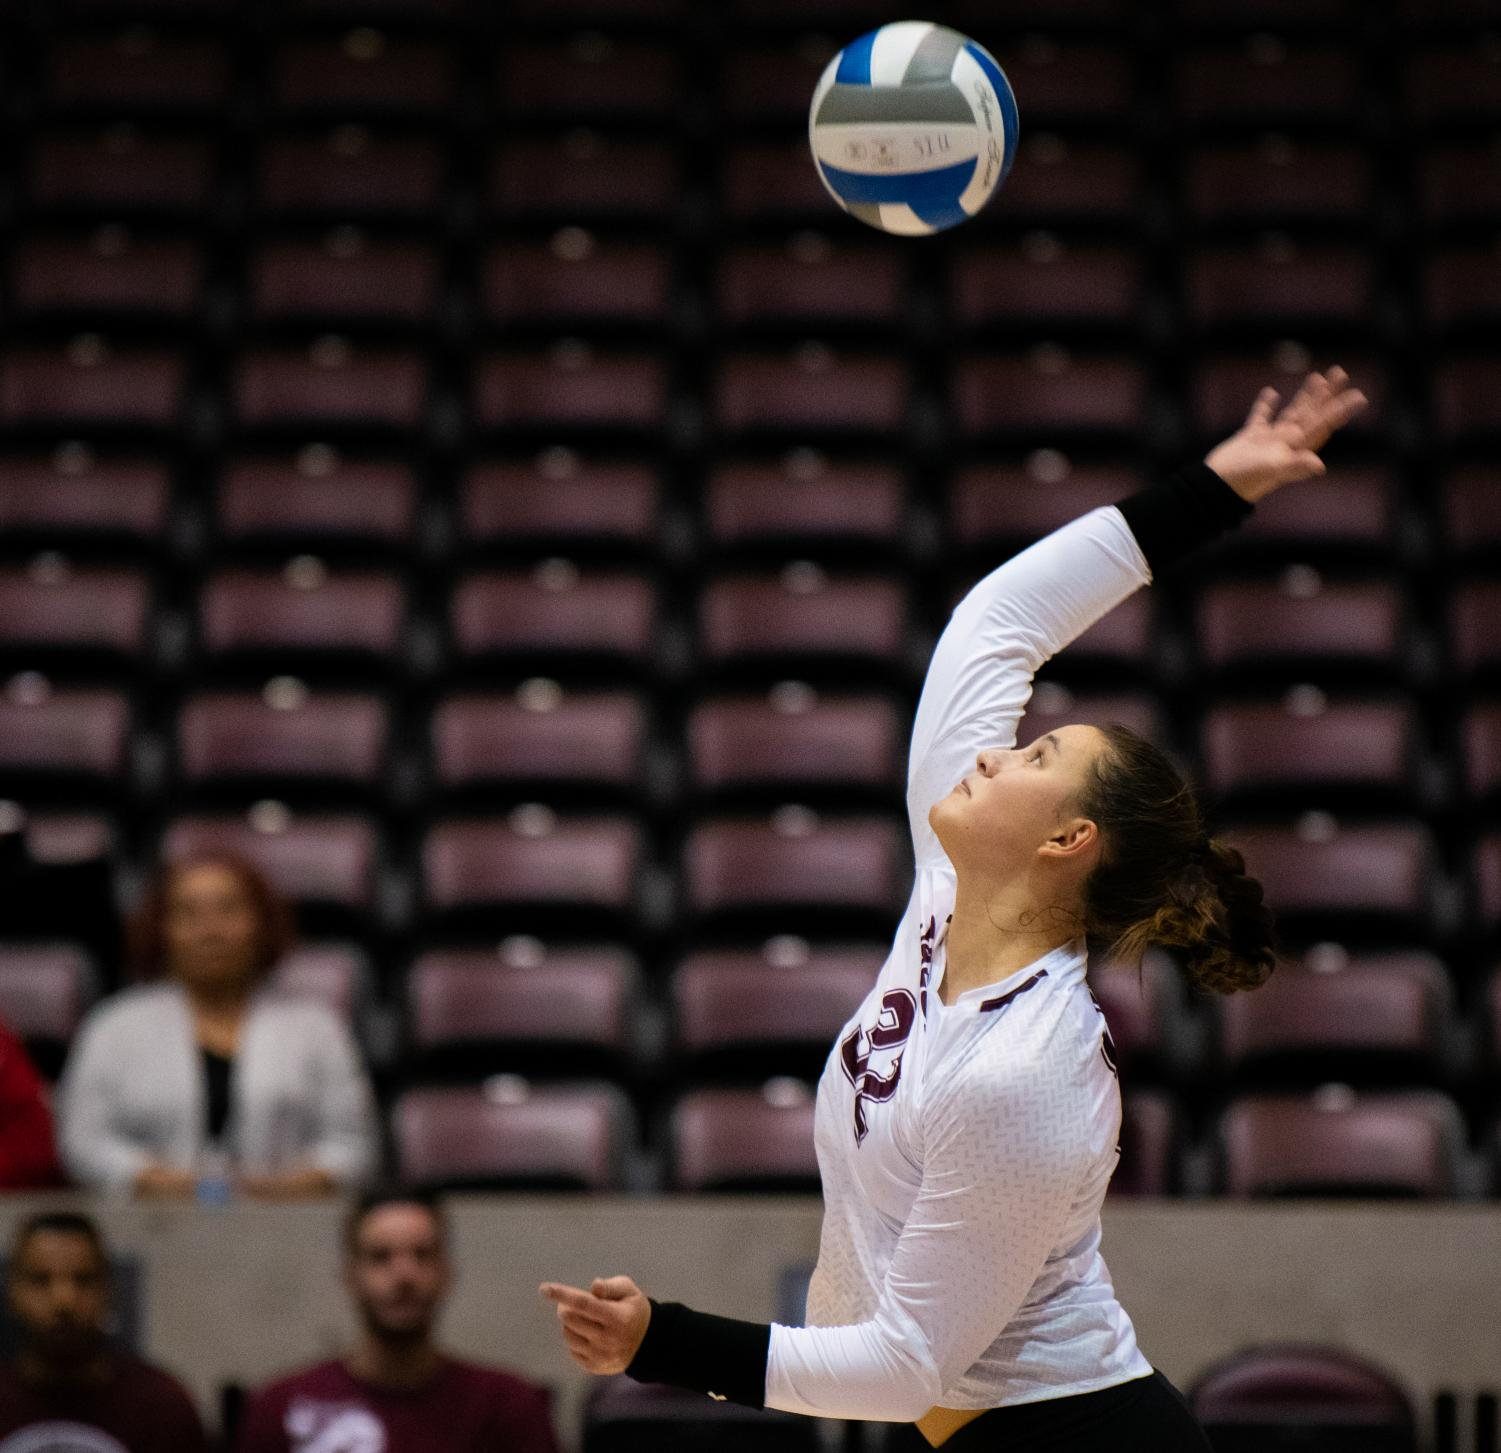 Freshman+outside+hitter+Bailey+Neuberger+serves+the+ball+on+Saturday%2C+Sept.+7%2C+2019+during+the+Salukis%E2%80%99+3-1+win+against+the+Southeastern+Louisiana+University+Lions+at+the+Banterra+Center.+